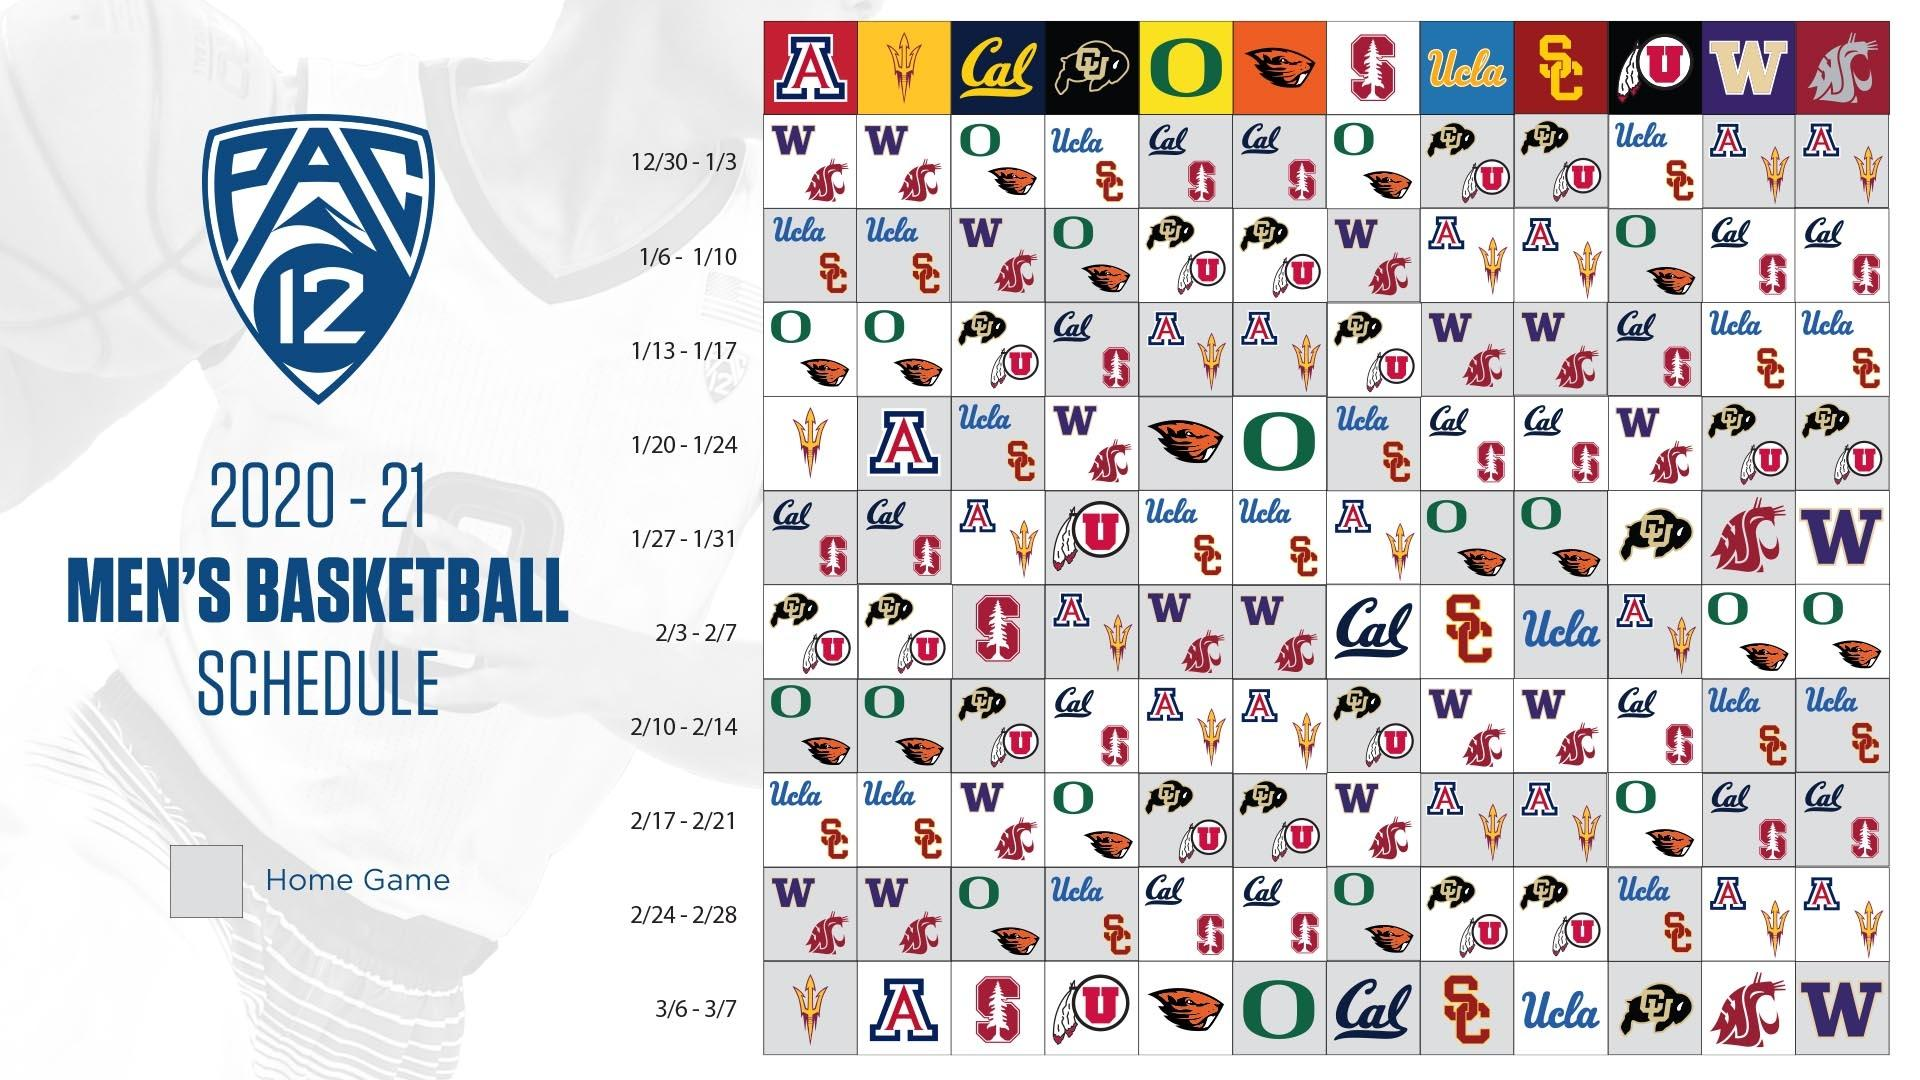 College Basketball Schedule Latest Covid 19 News For The 2020 21 Season Ncaa Com